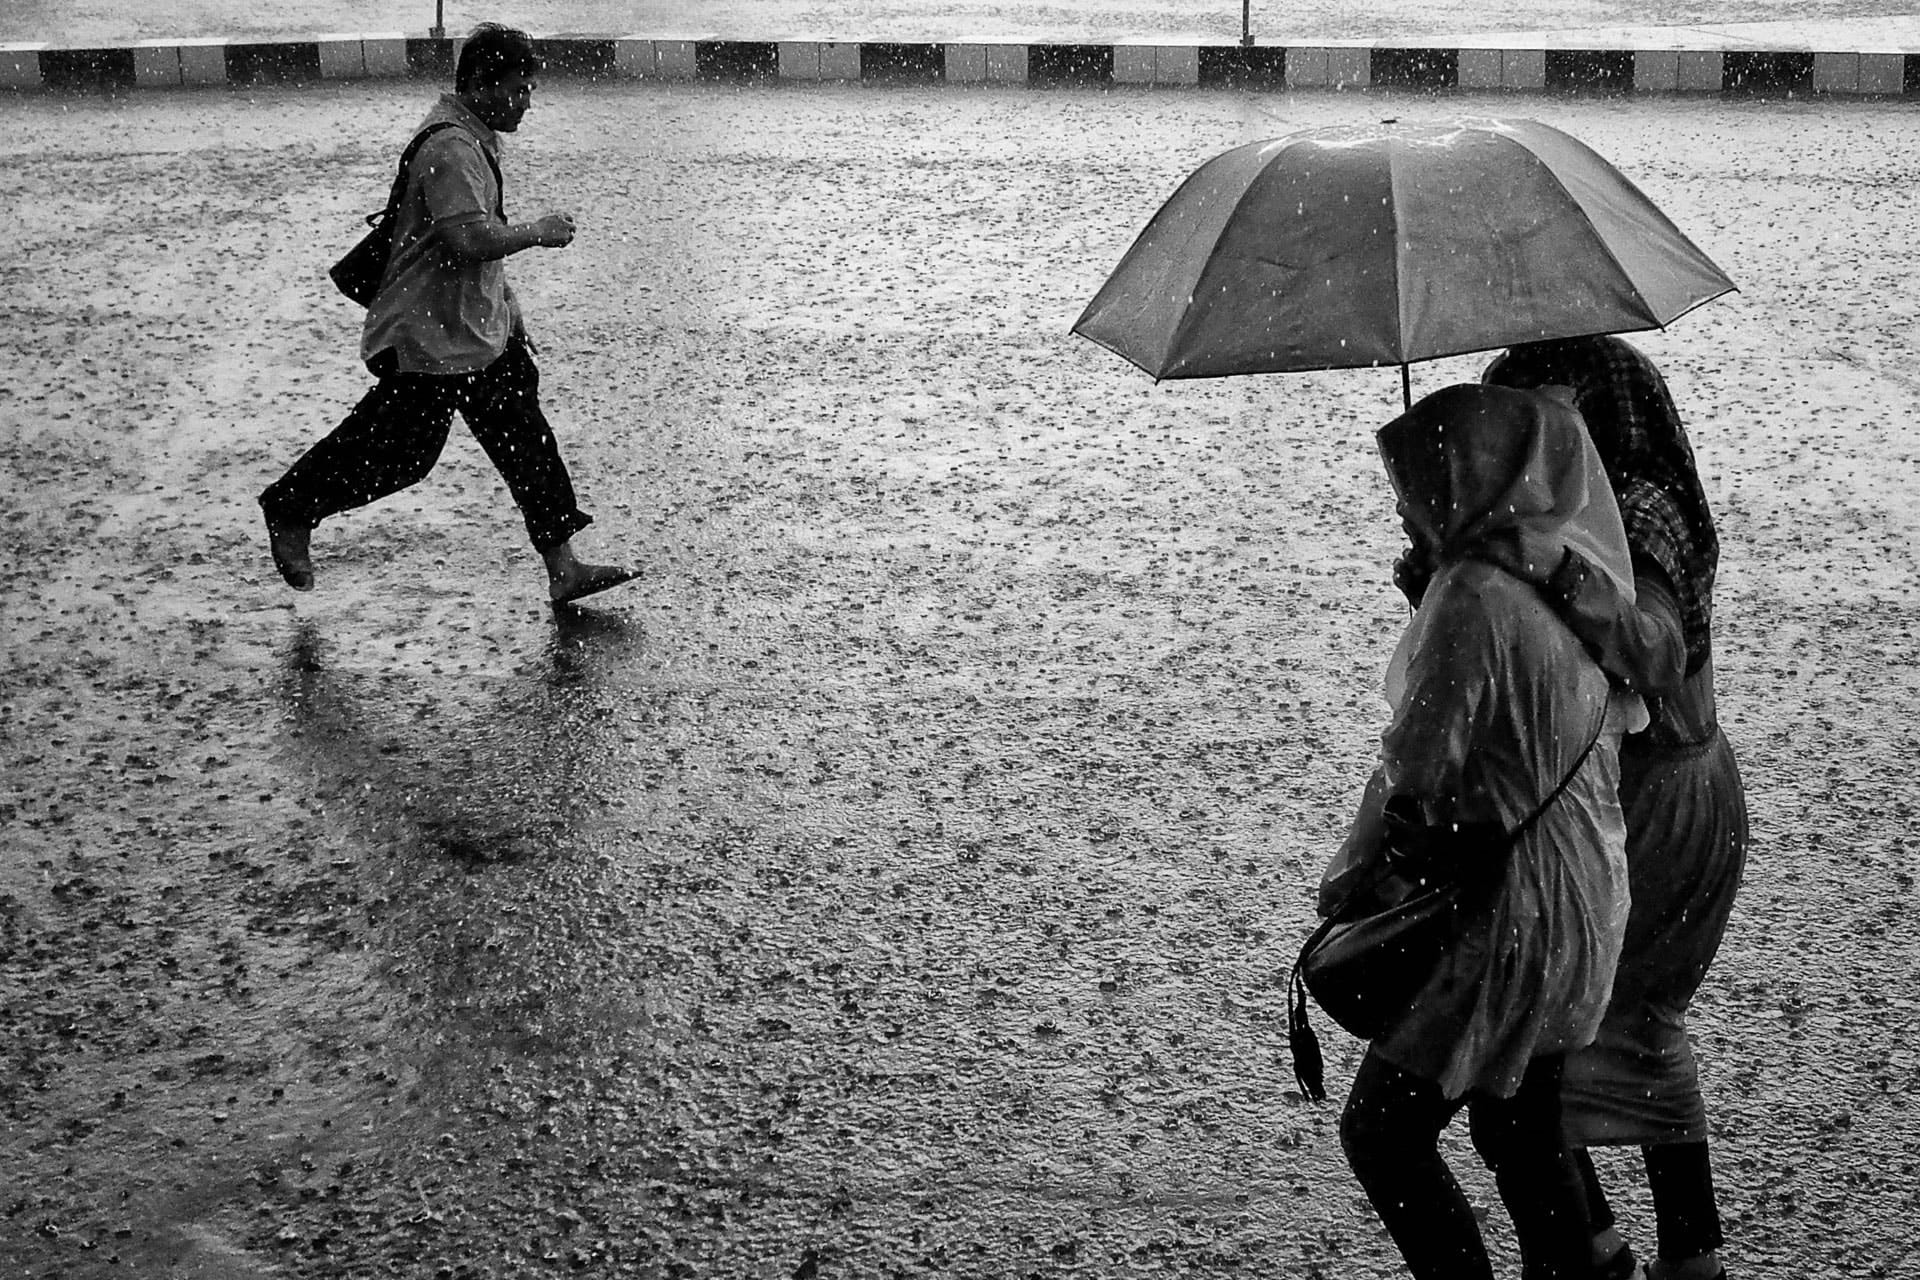 March 2018 Street Photography Contest Submissions - Rainy day